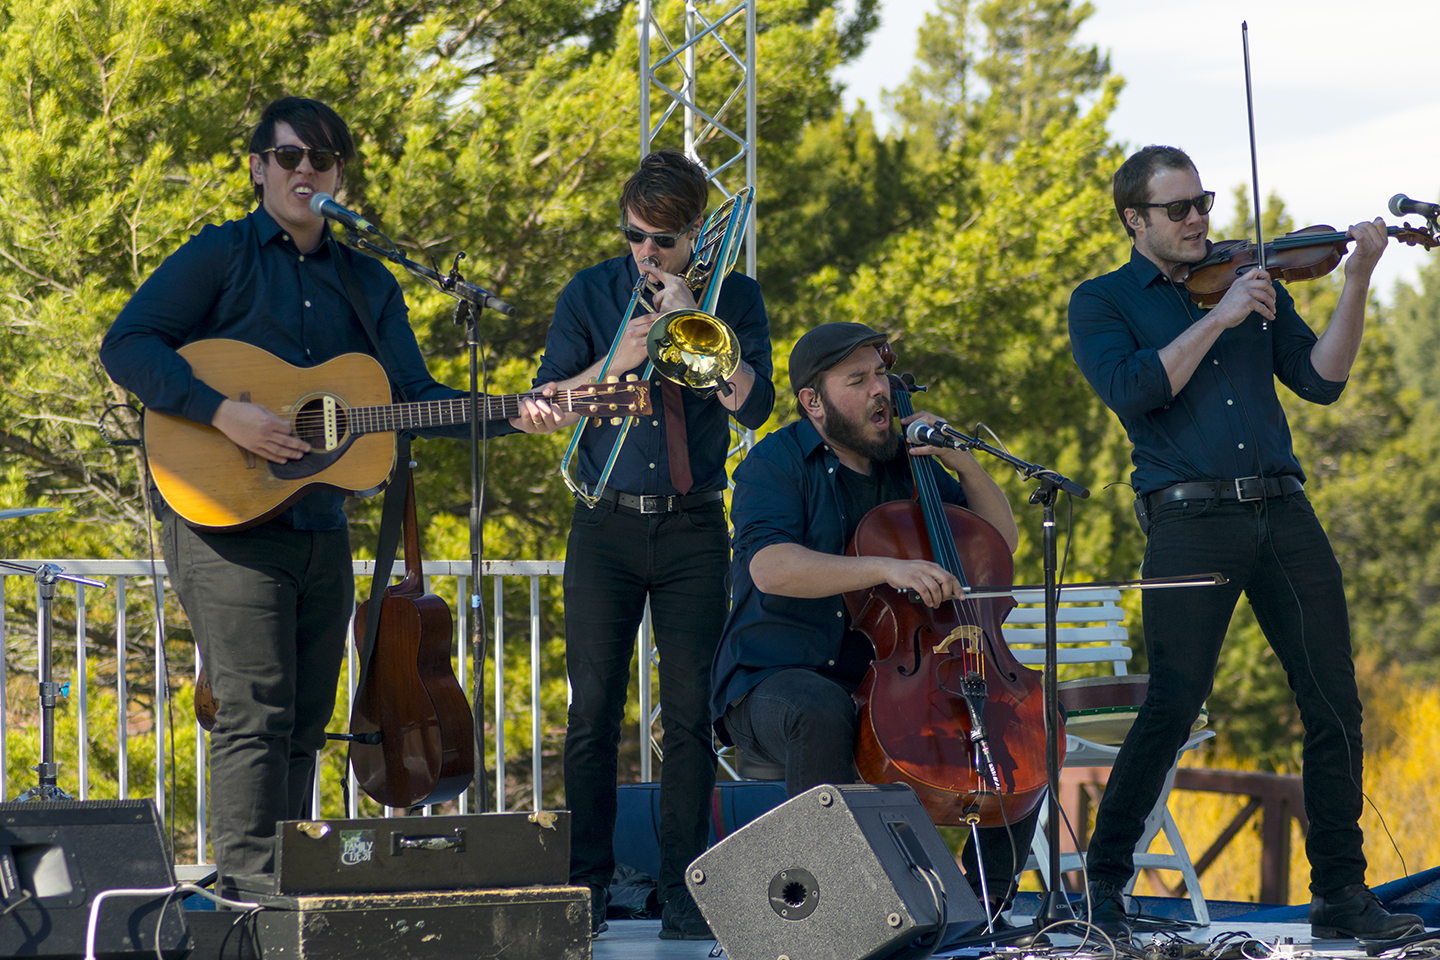 The Family Crest plays at Lake Tahoe Golf Course during Sierra-at-Tahoe's final Spring Equinox show of the season. From left, Liam McCormick, George Samaan, Charly Akert and Owen Sutter.